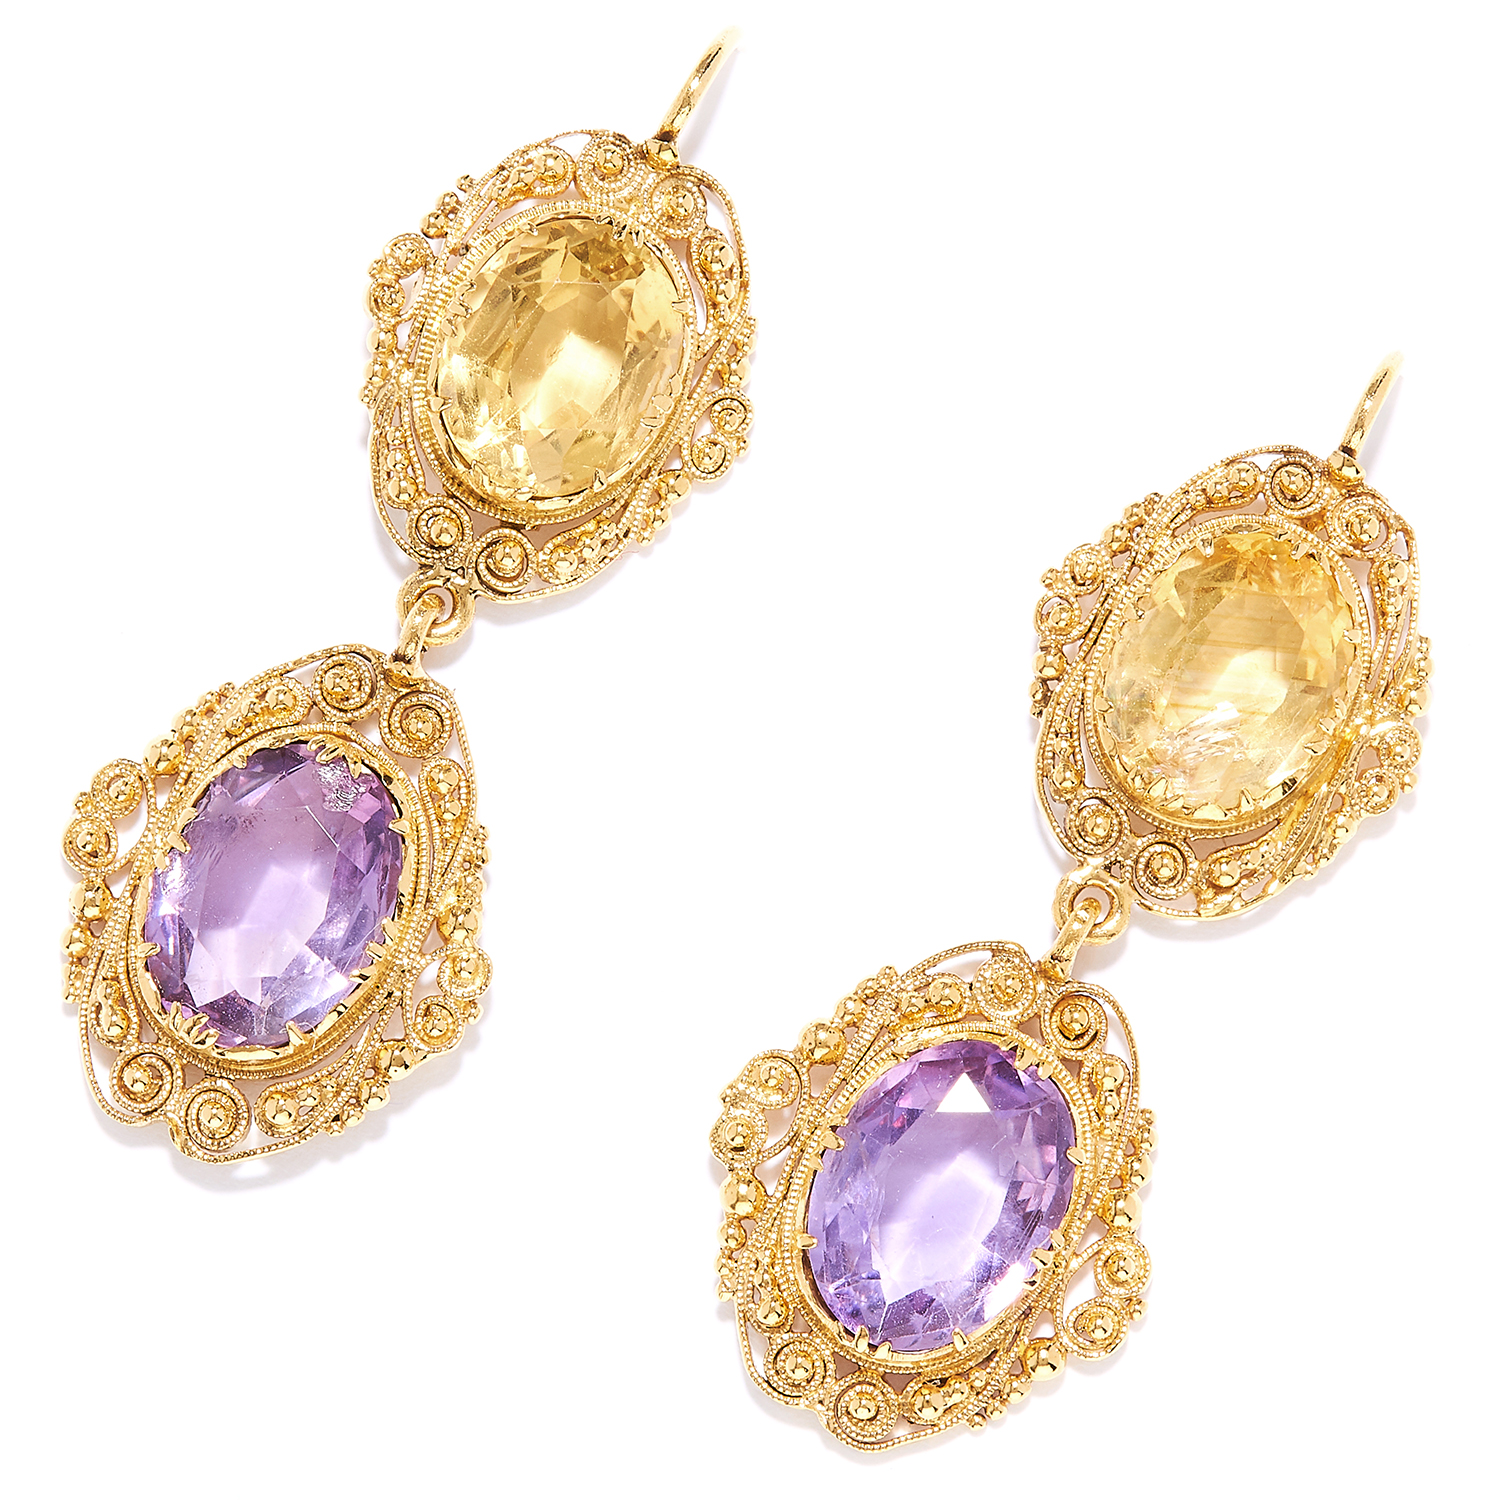 Los 11 - ANTIQUE CITRINE AND AMETHYST EARRINGS in 18ct yellow gold, each set with an oval cut citrine